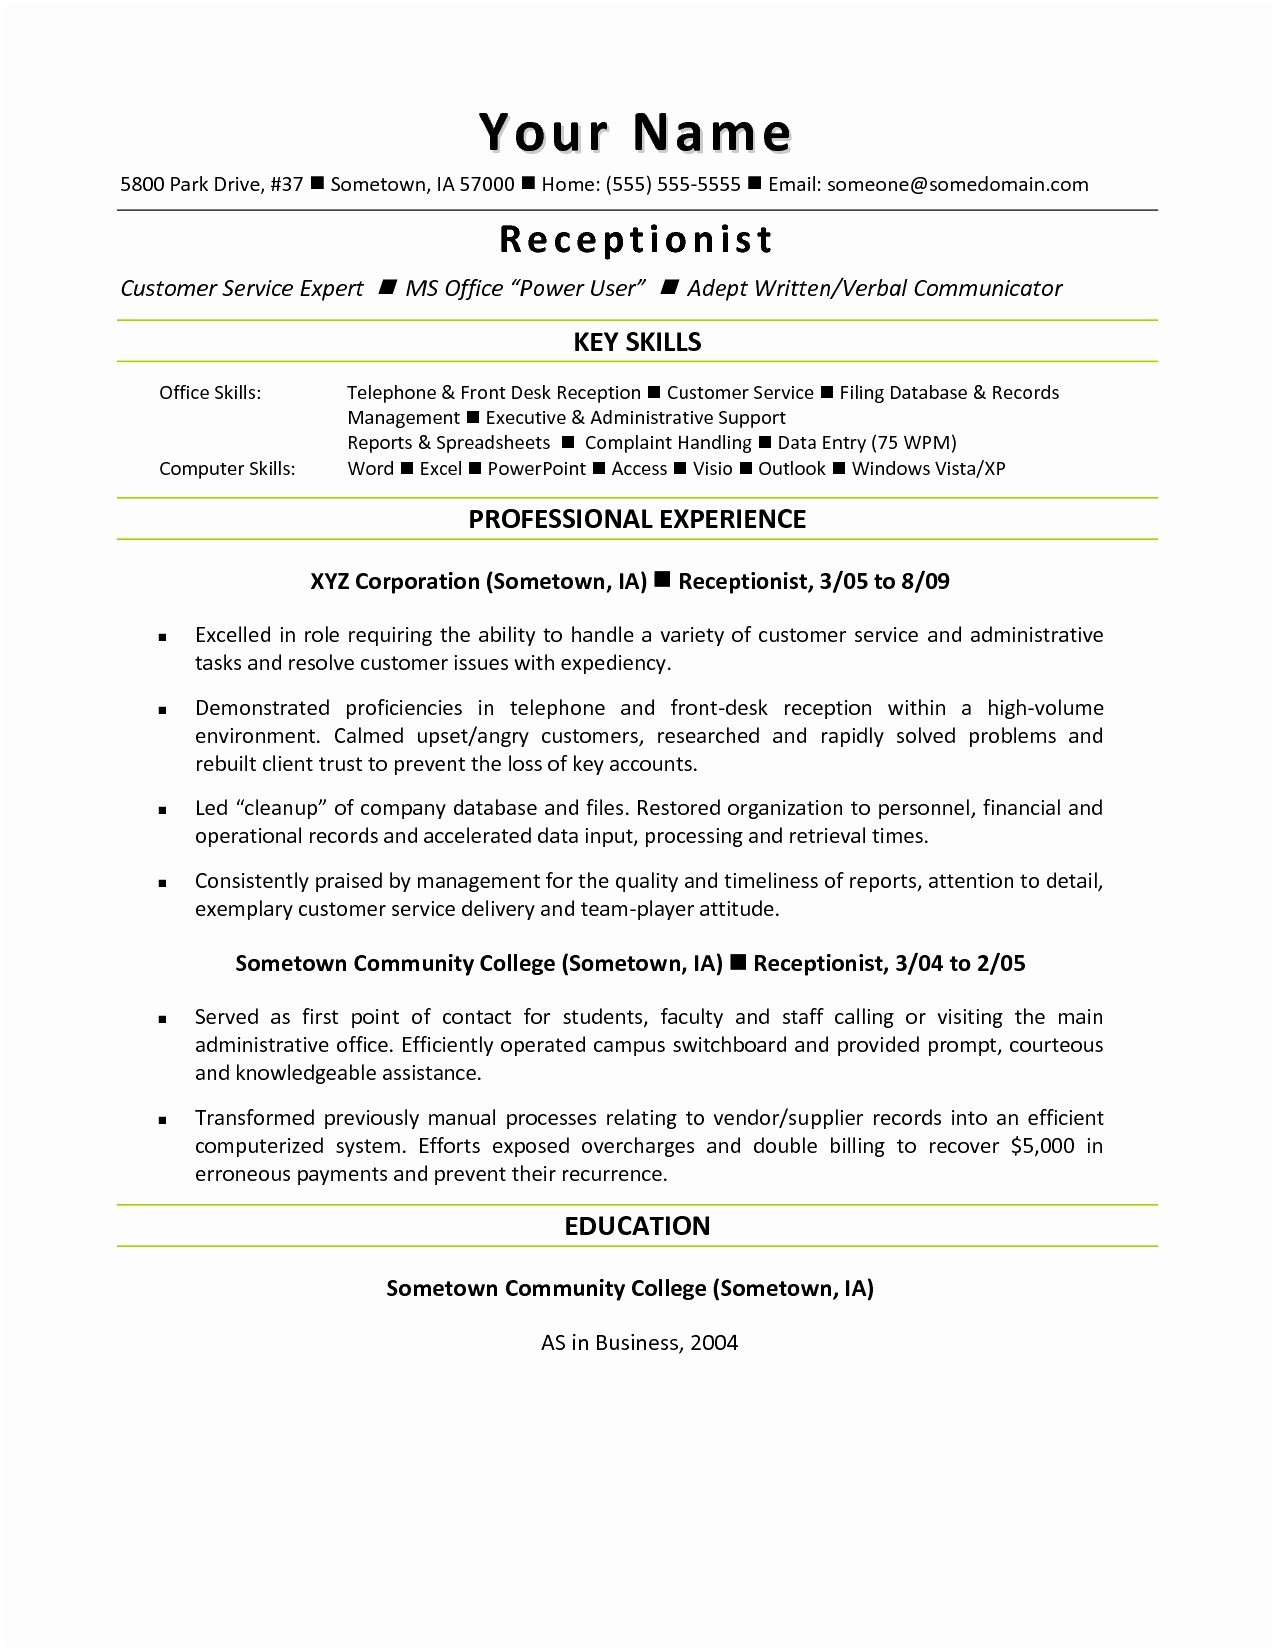 microsoft cover letter template Collection-Microsoft Template Resume Simple Resume Mail Format Sample Fresh Beautiful Od Consultant Cover Letter 3-q